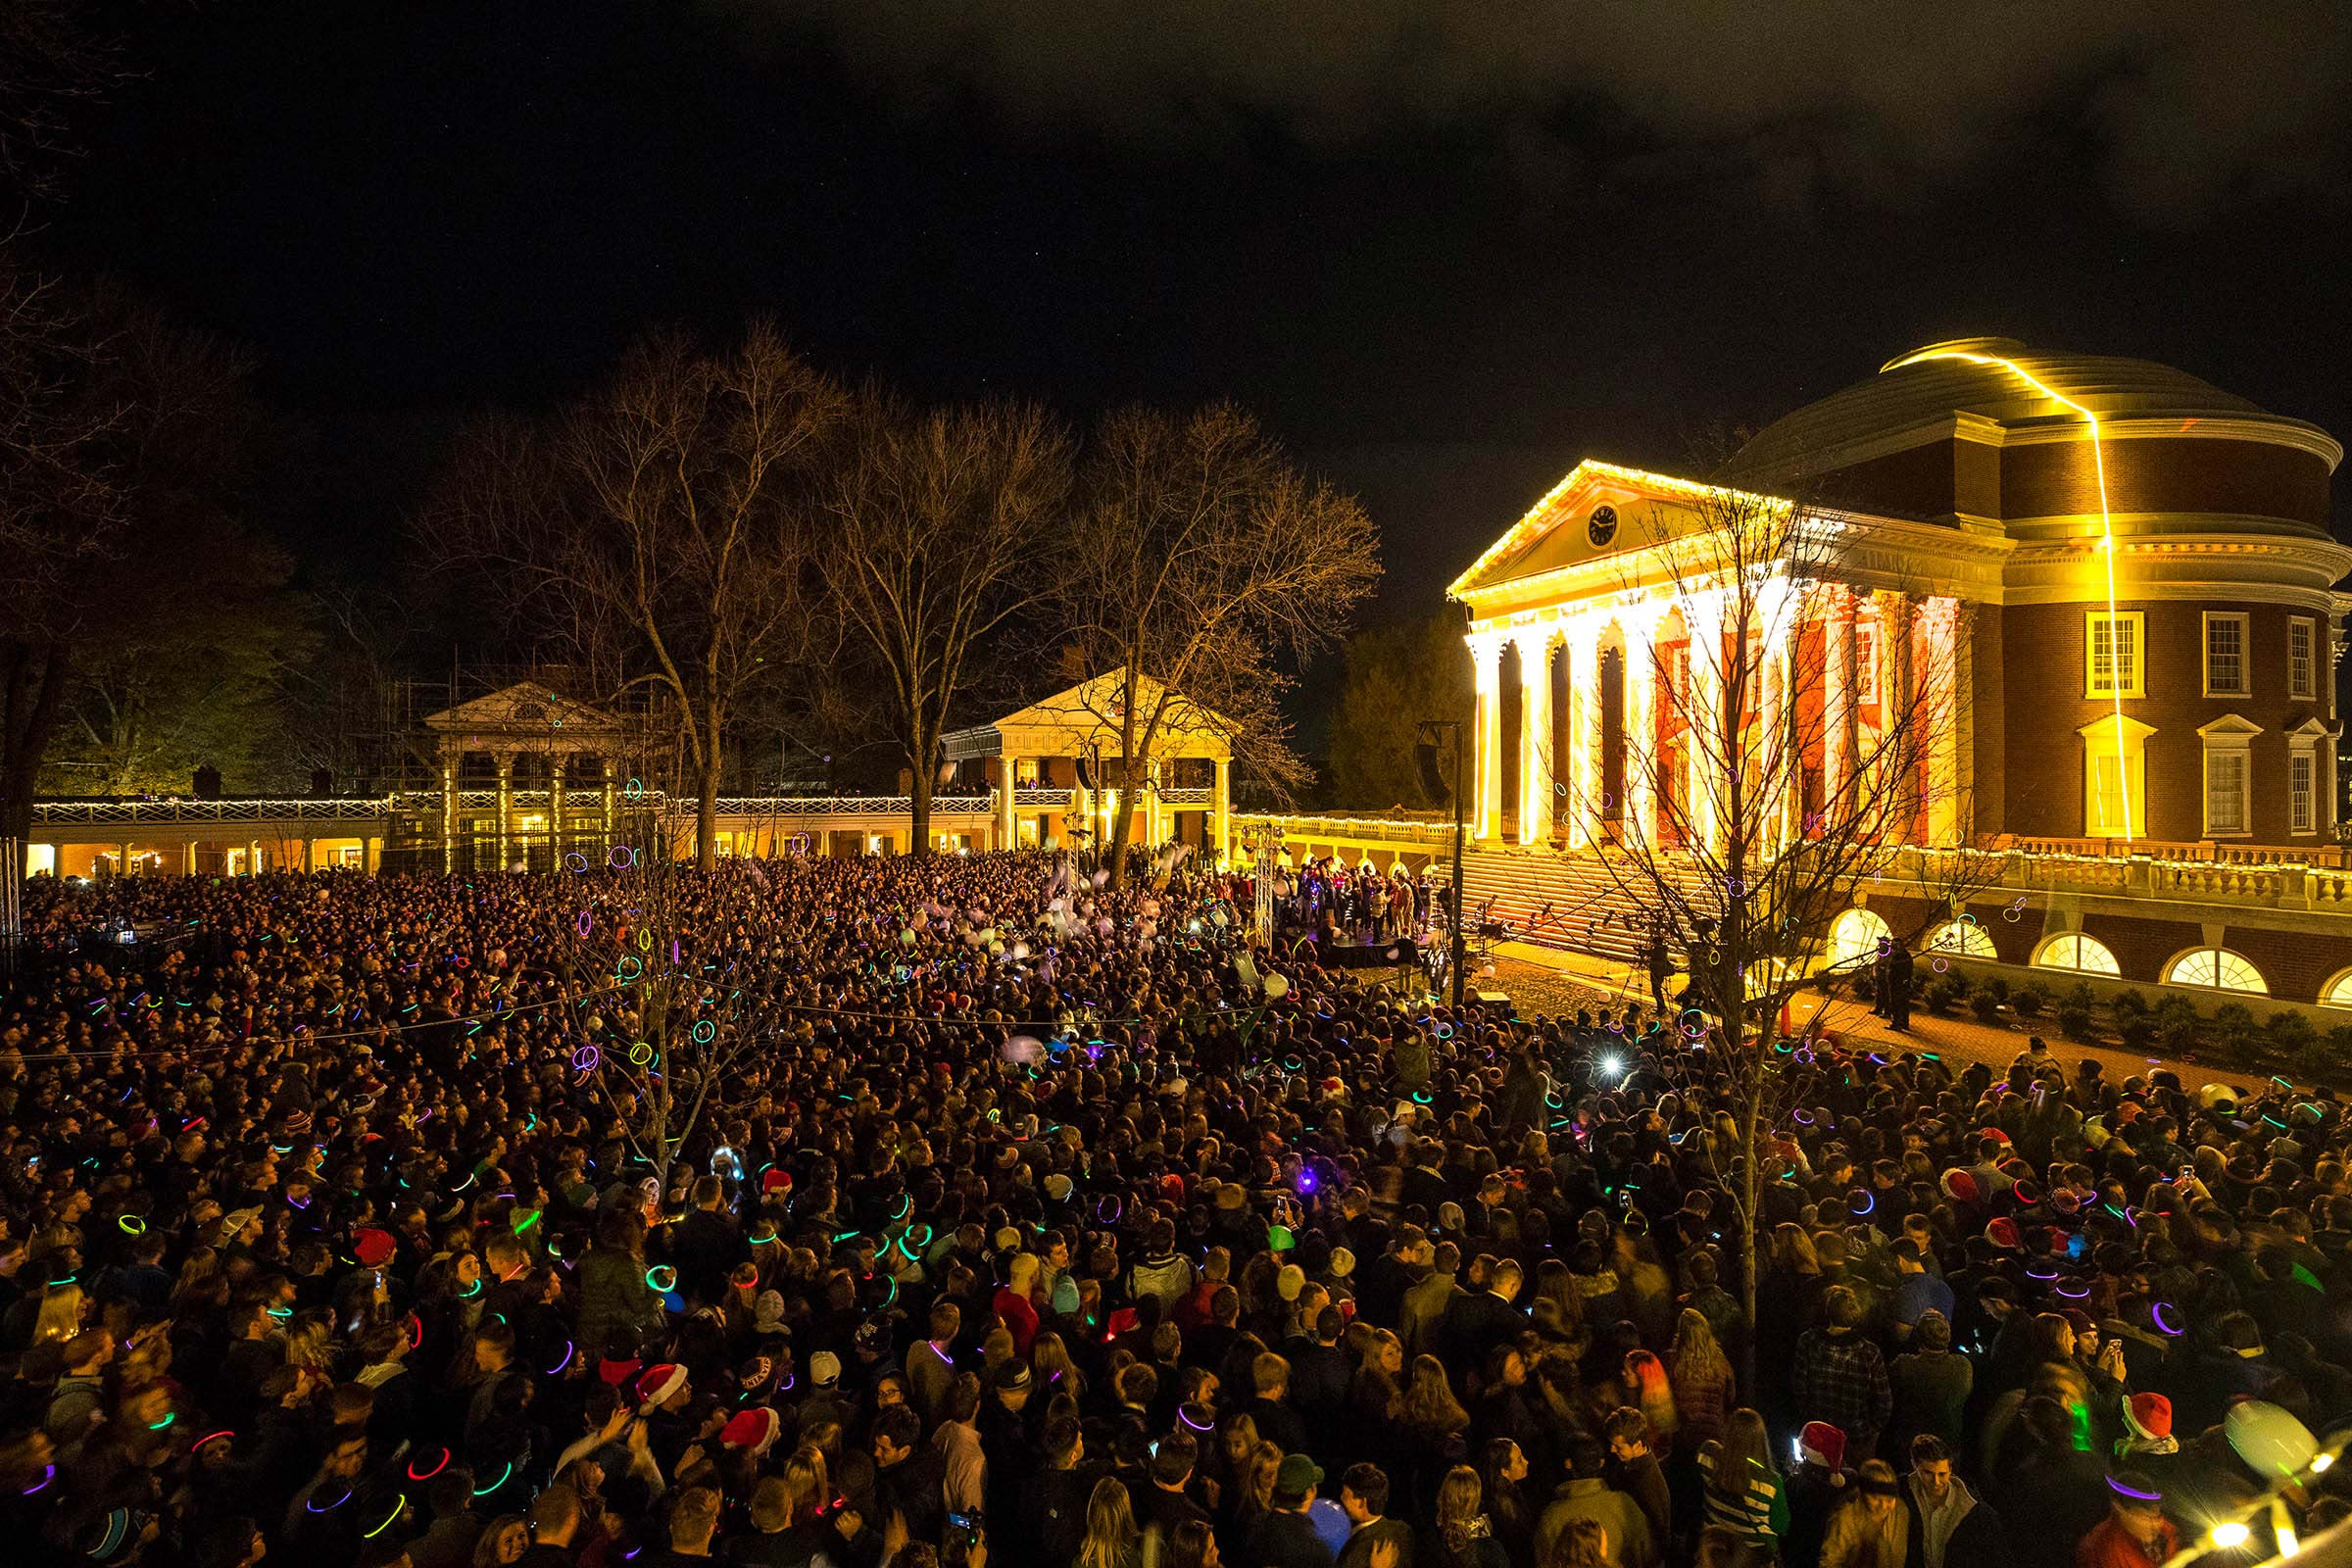 Since 2001, the annual Lighting of the Lawn celebration has drawn thousands to the Academical Village for an evening of entertainment and fellowship.